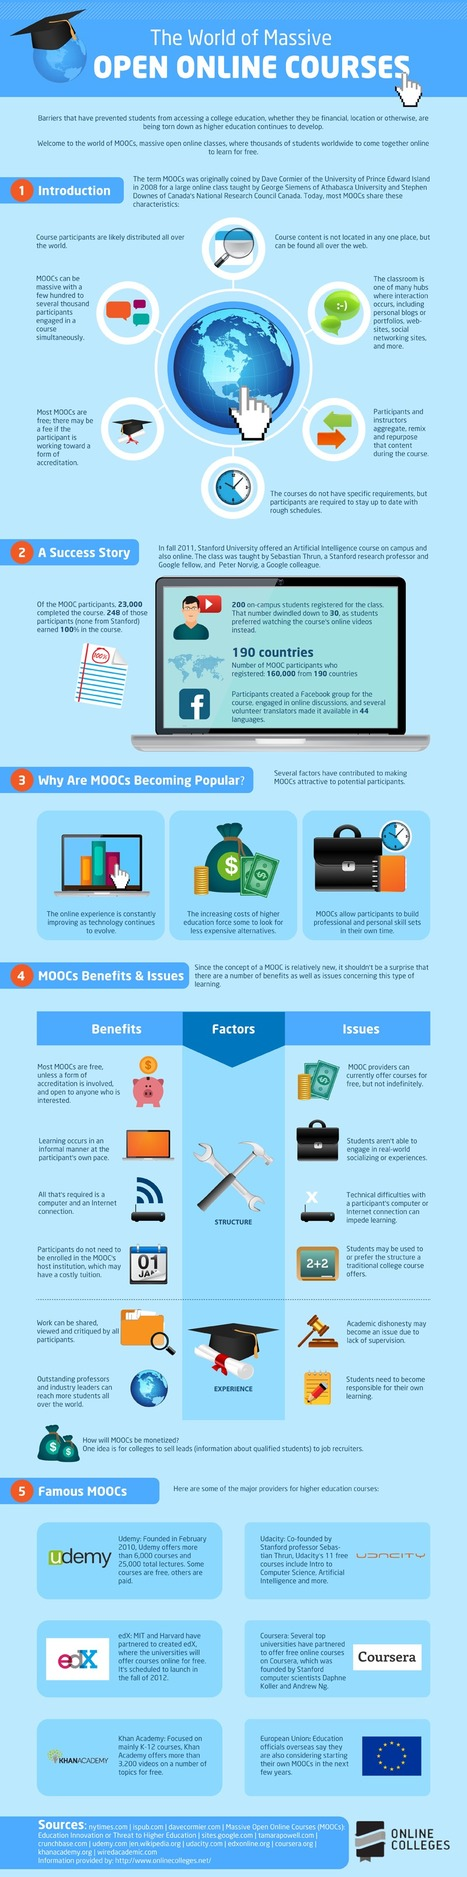 The World of Massive Open Online Courses [Infographic] | omnia mea mecum fero | Scoop.it